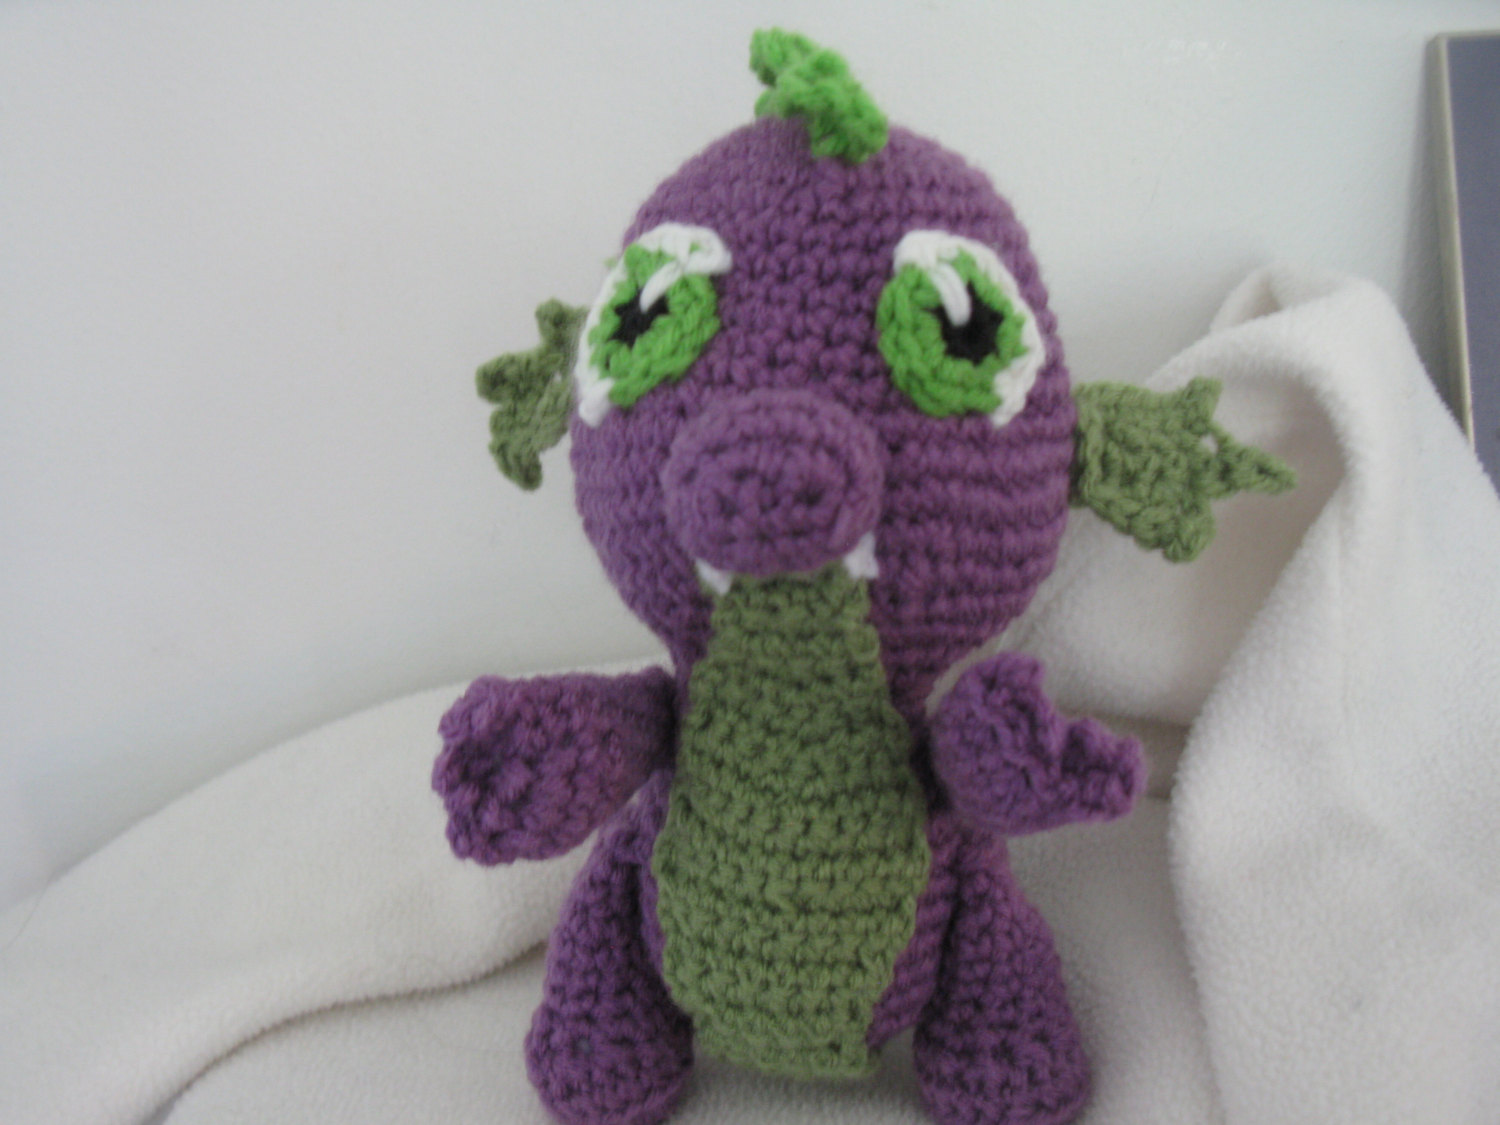 Crochet Pattern Spike the Dragon Amigurumi PDF par MilesofCrochet ... | 1125x1500